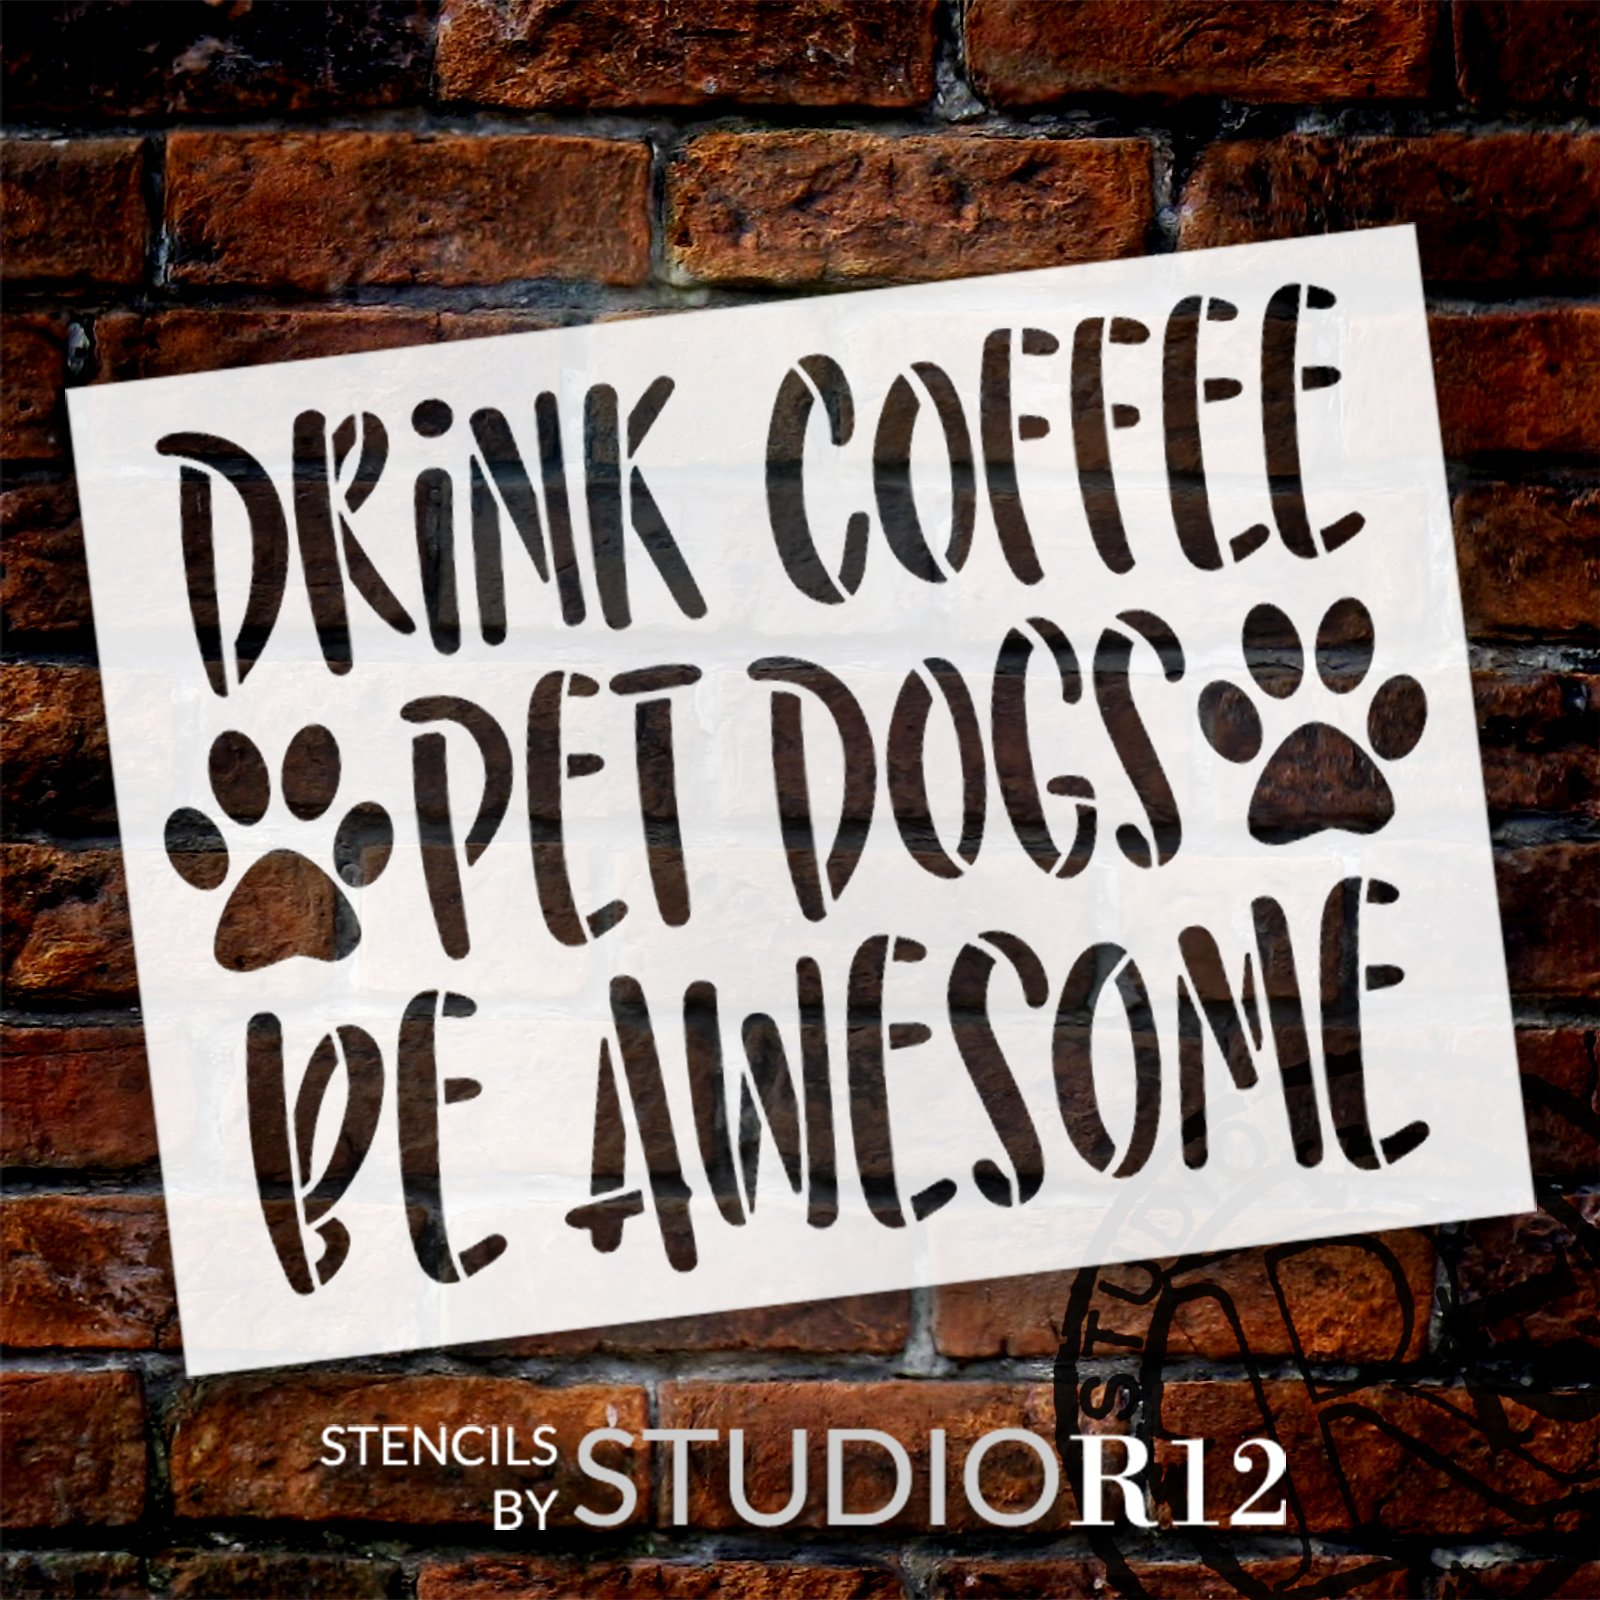 Drink Coffee Pet Dogs Be Awesome Stencil by StudioR12 | Craft DIY Pawprint Kitchen Home Decor | Paint Wood Sign Reusable Mylar Template | Select Size